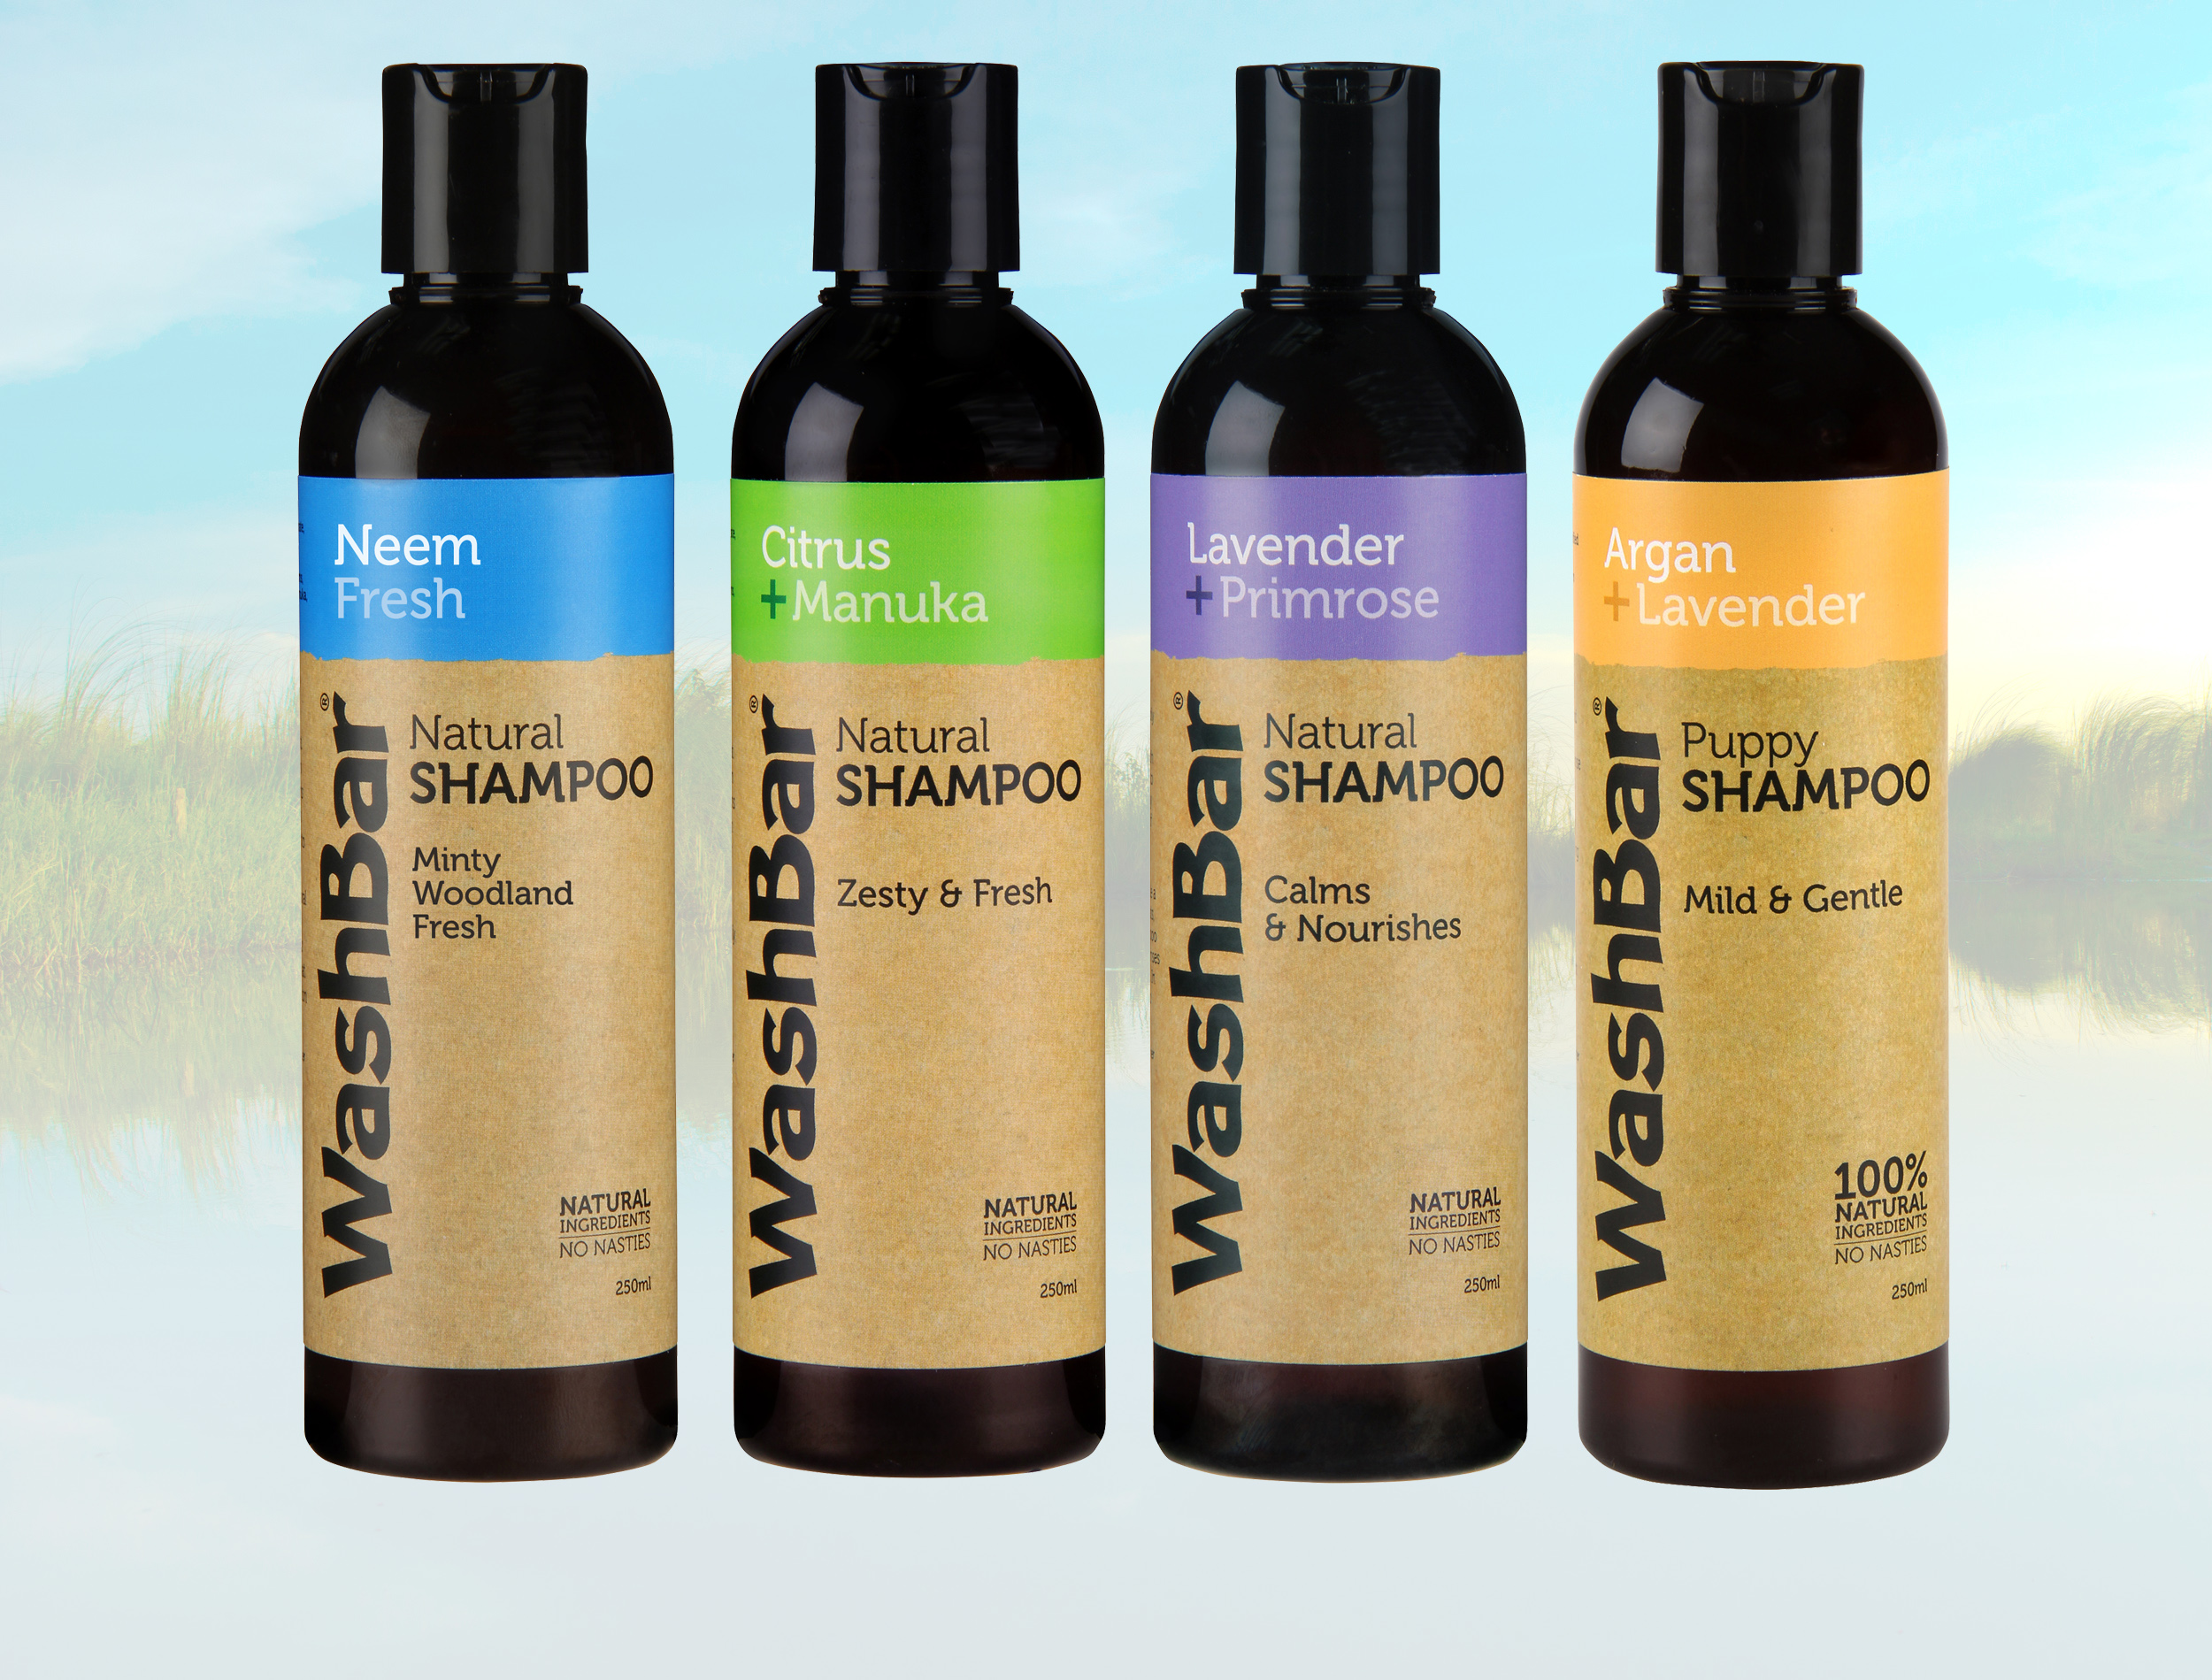 Natural Shampoo Range